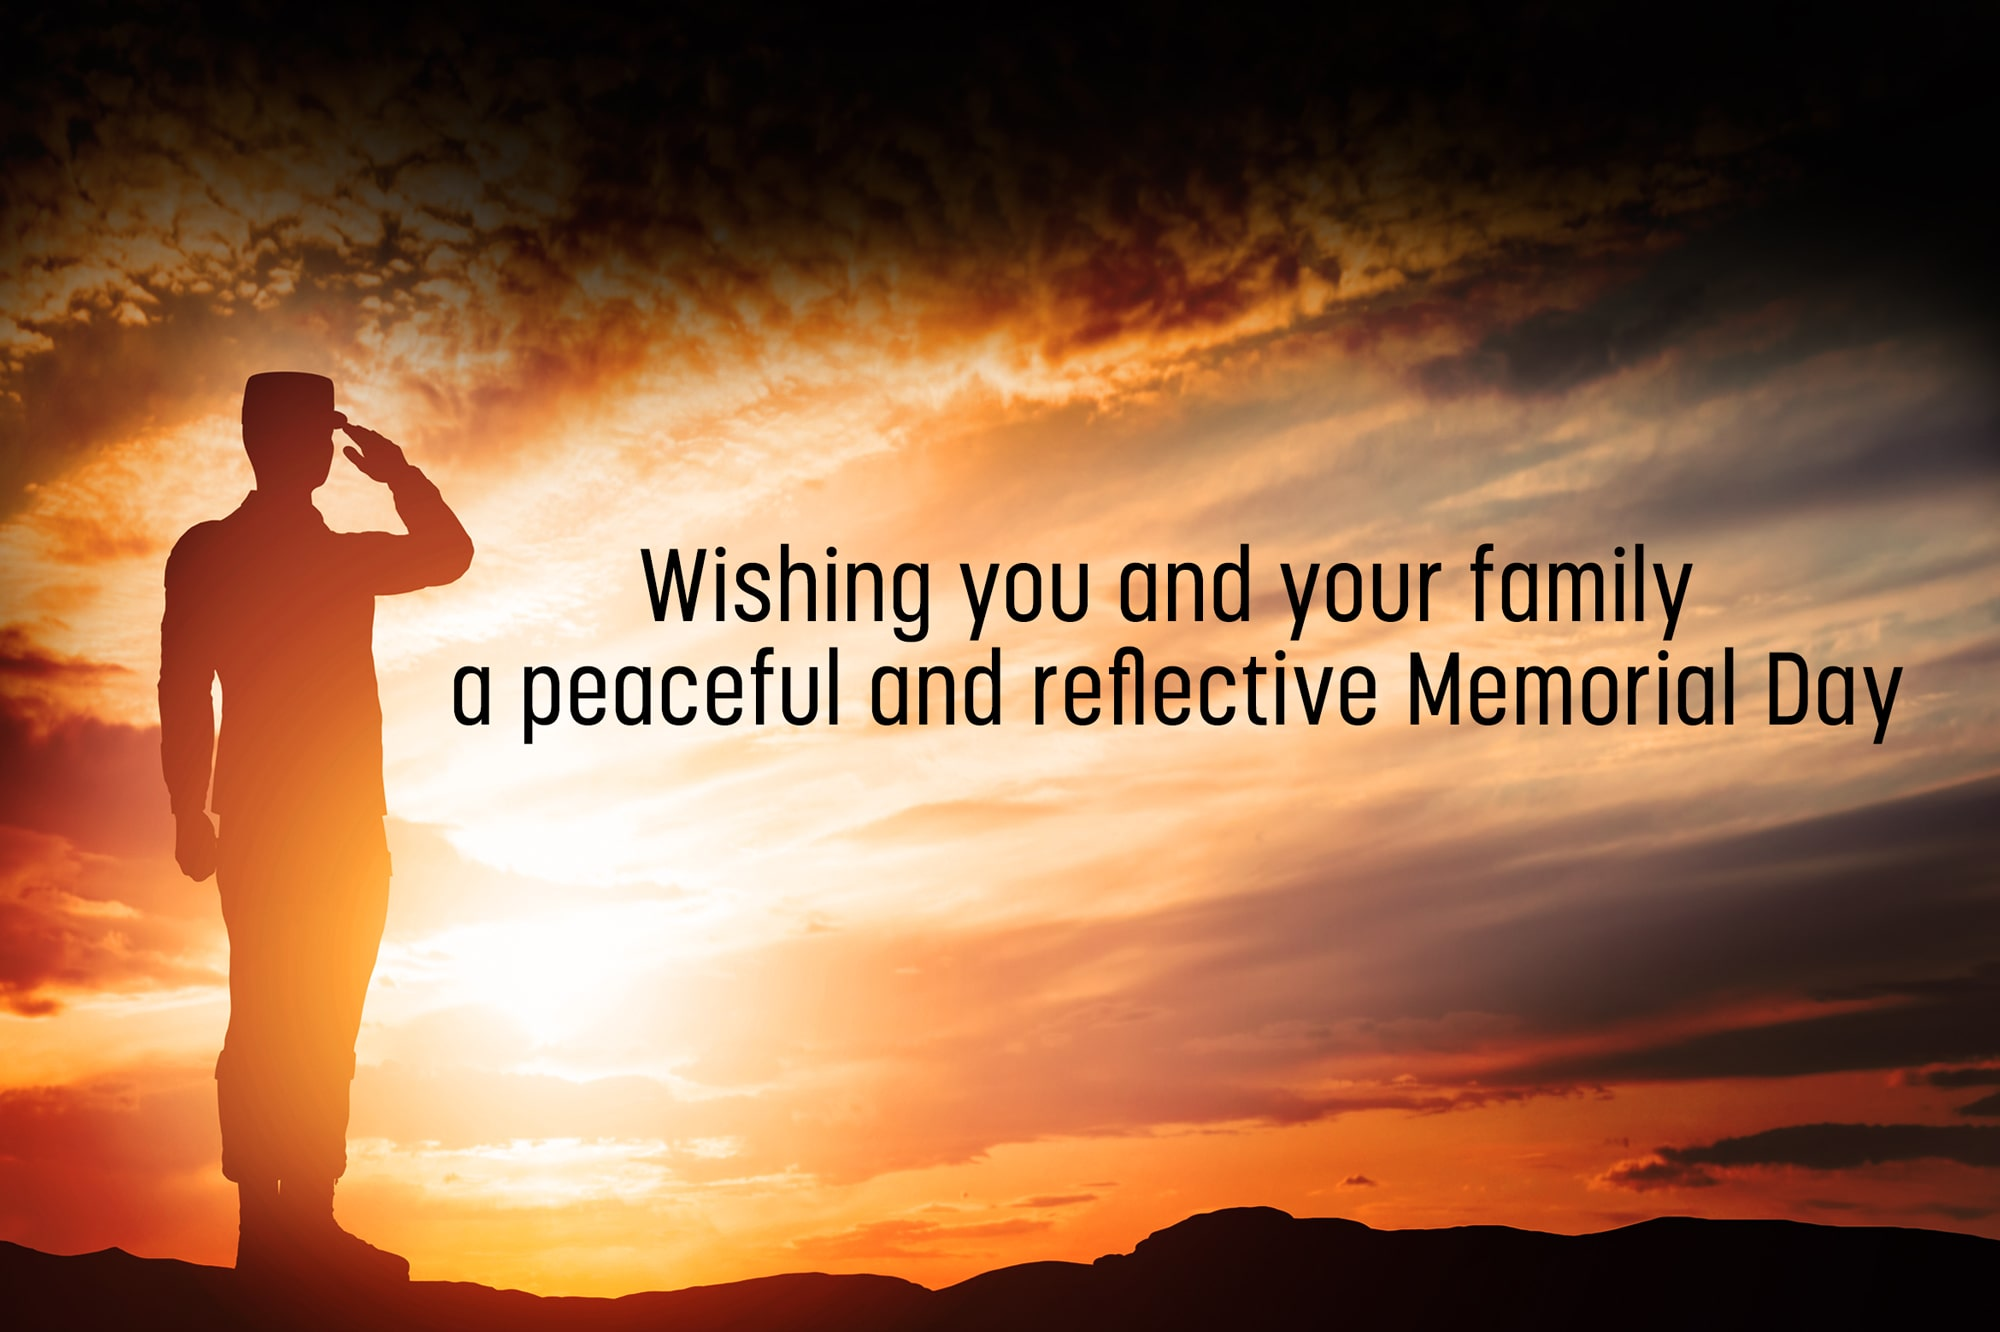 Wishing you and your family a peaceful and reflective Memorial Day